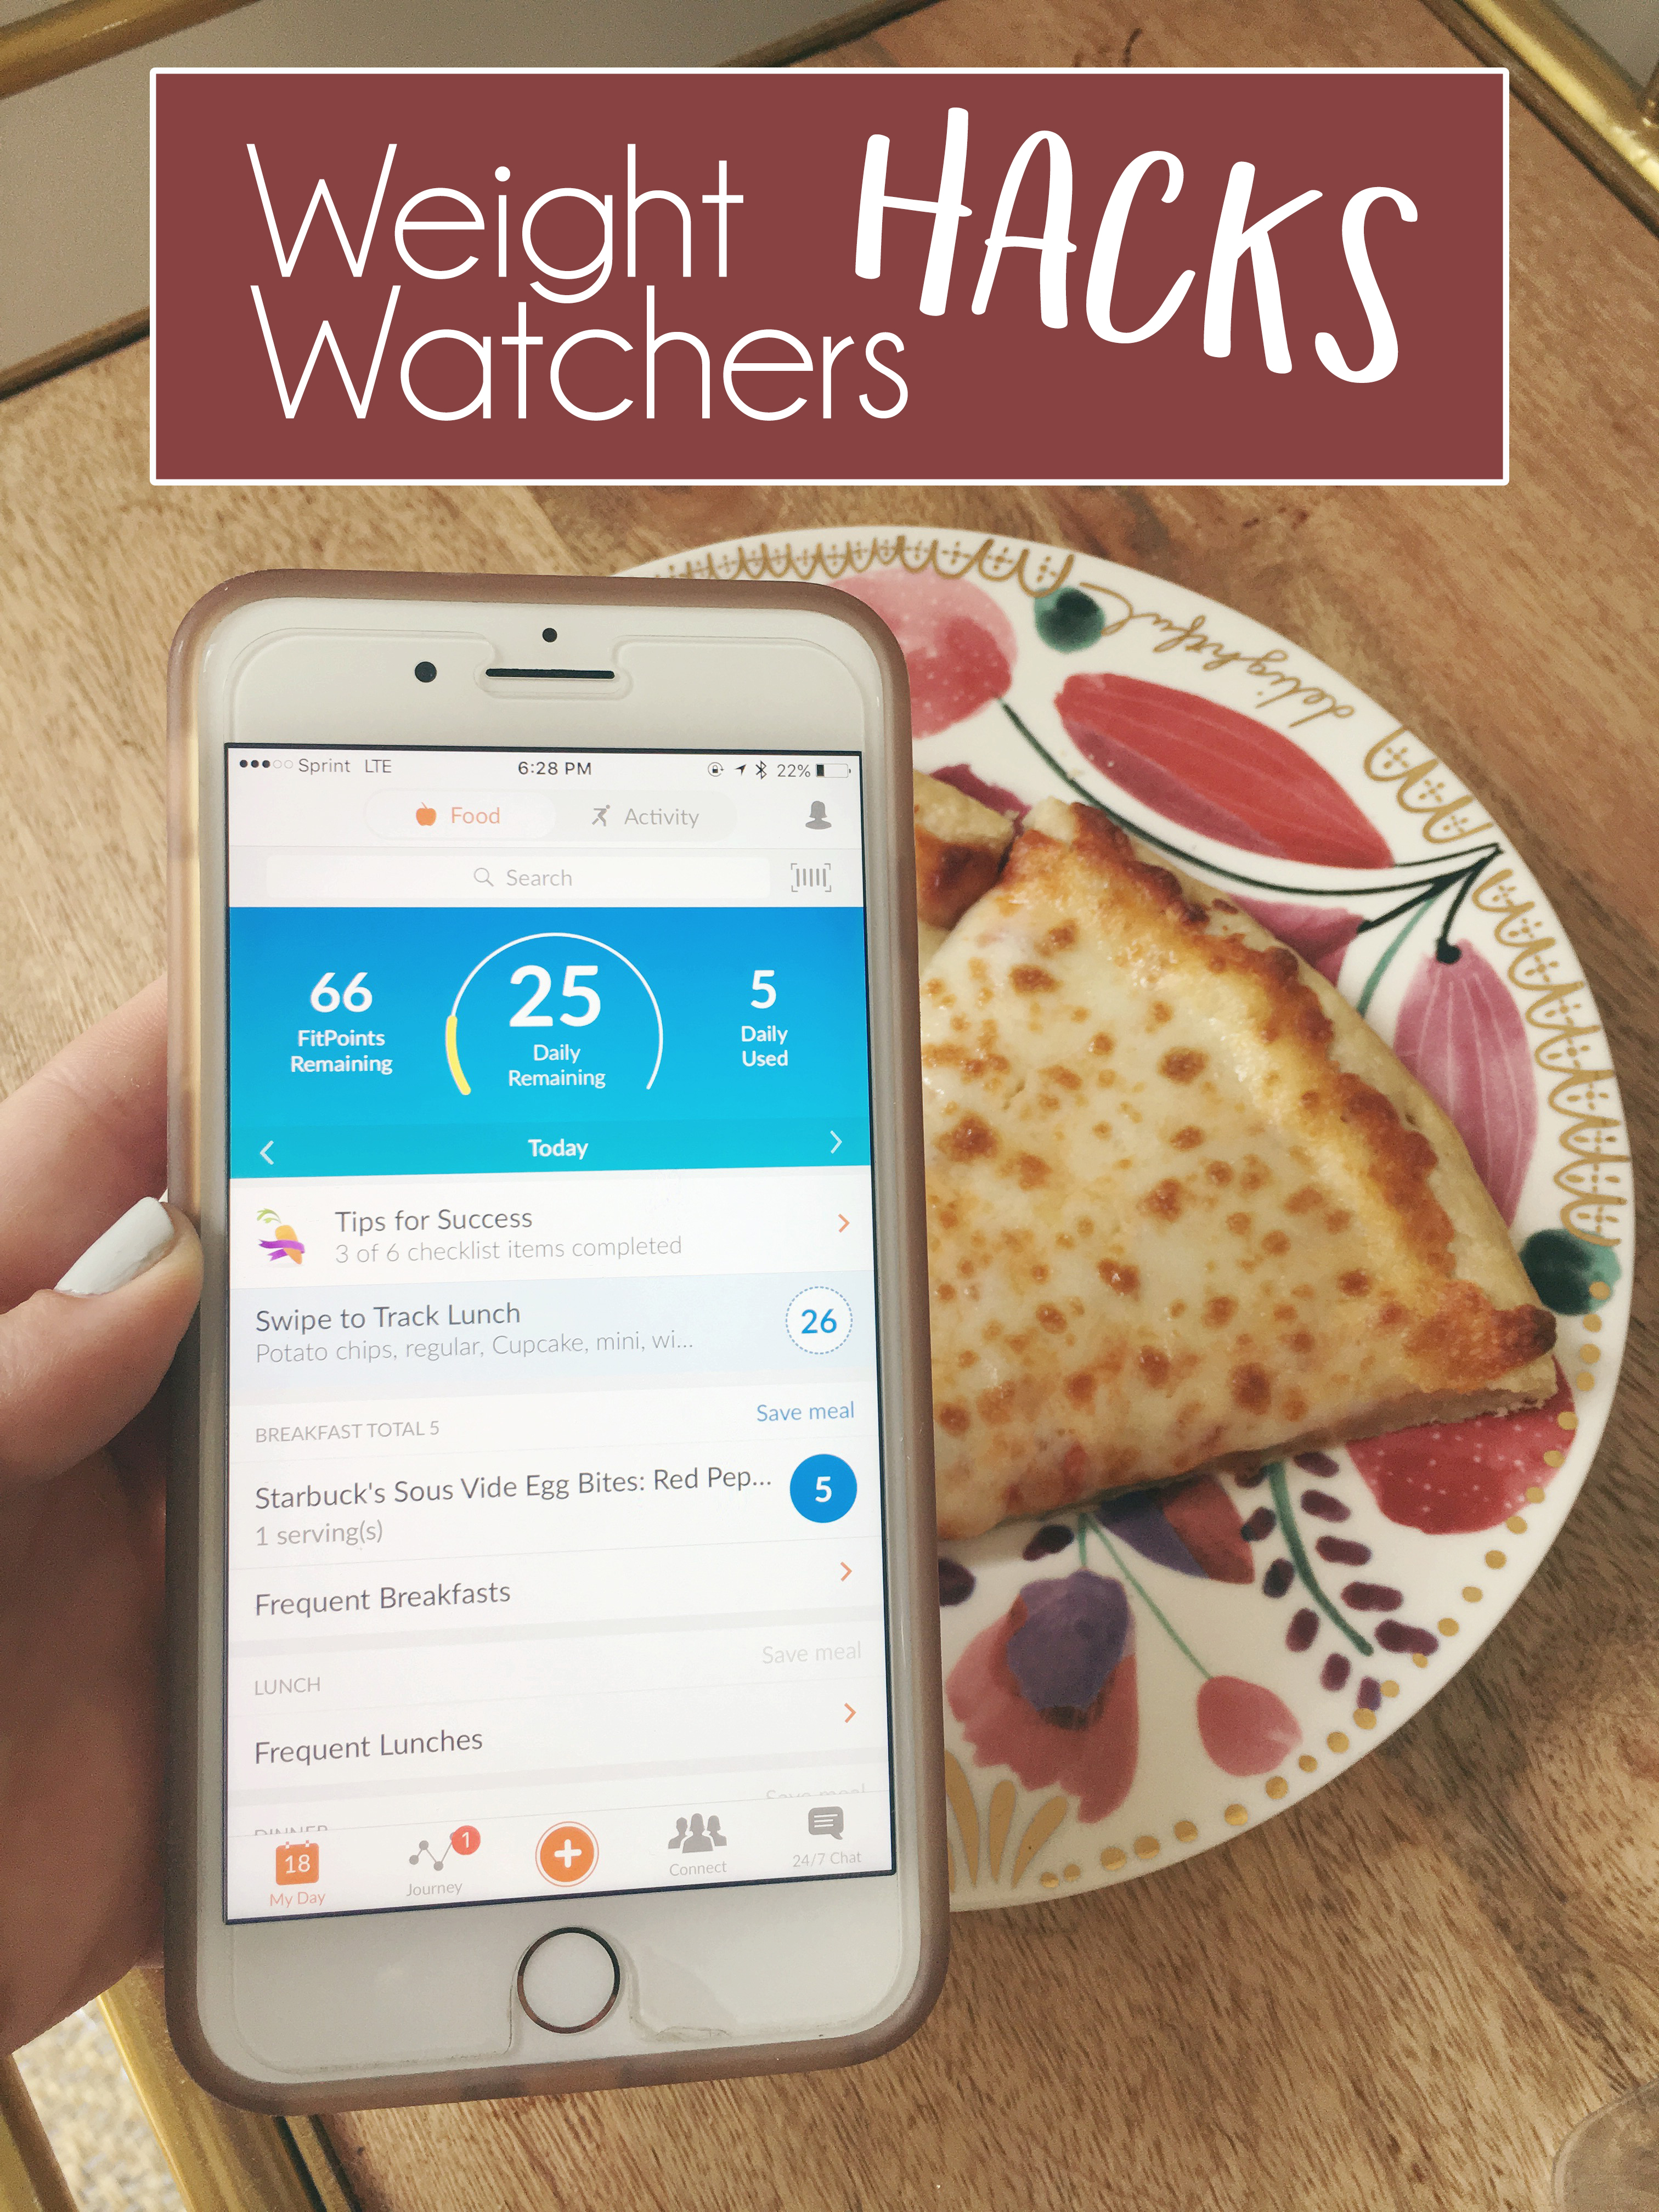 Weight Watchers Hacks | Just Peachy Blog